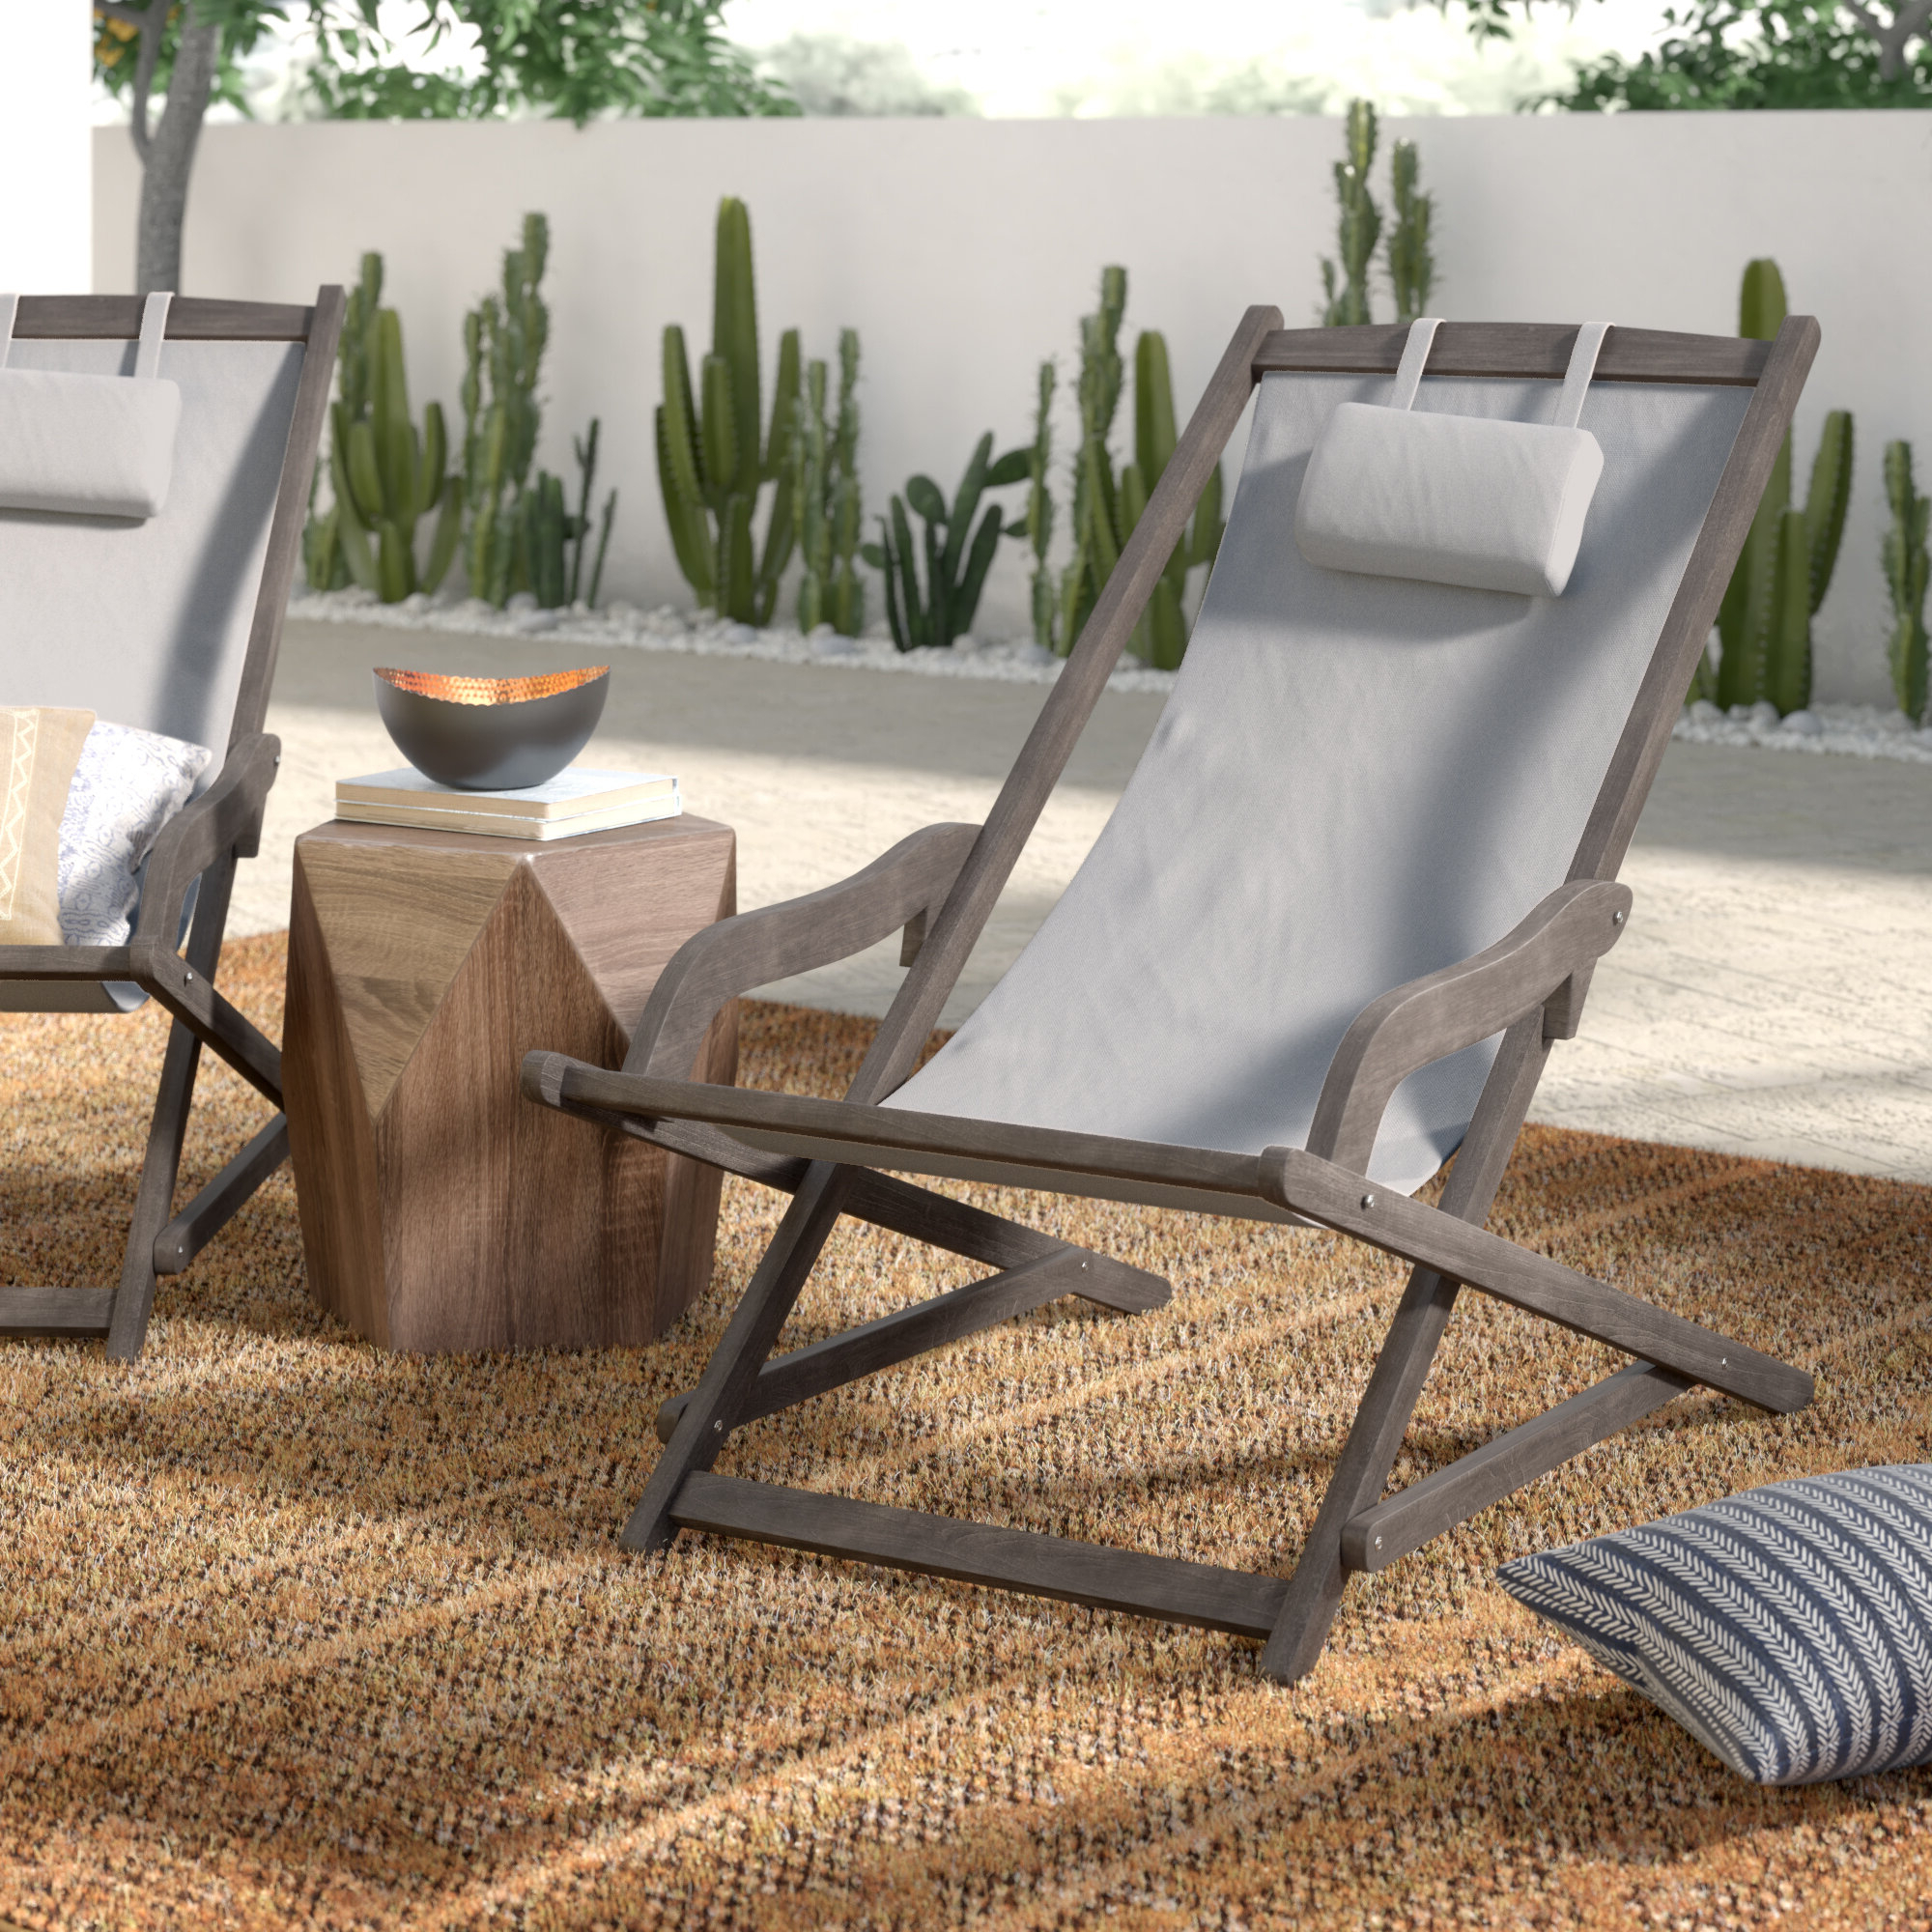 2020 Outdoor Wood Sling Chairs In Tardiff Outdoor Wood And Canvas Sling Arm Chair (View 1 of 25)